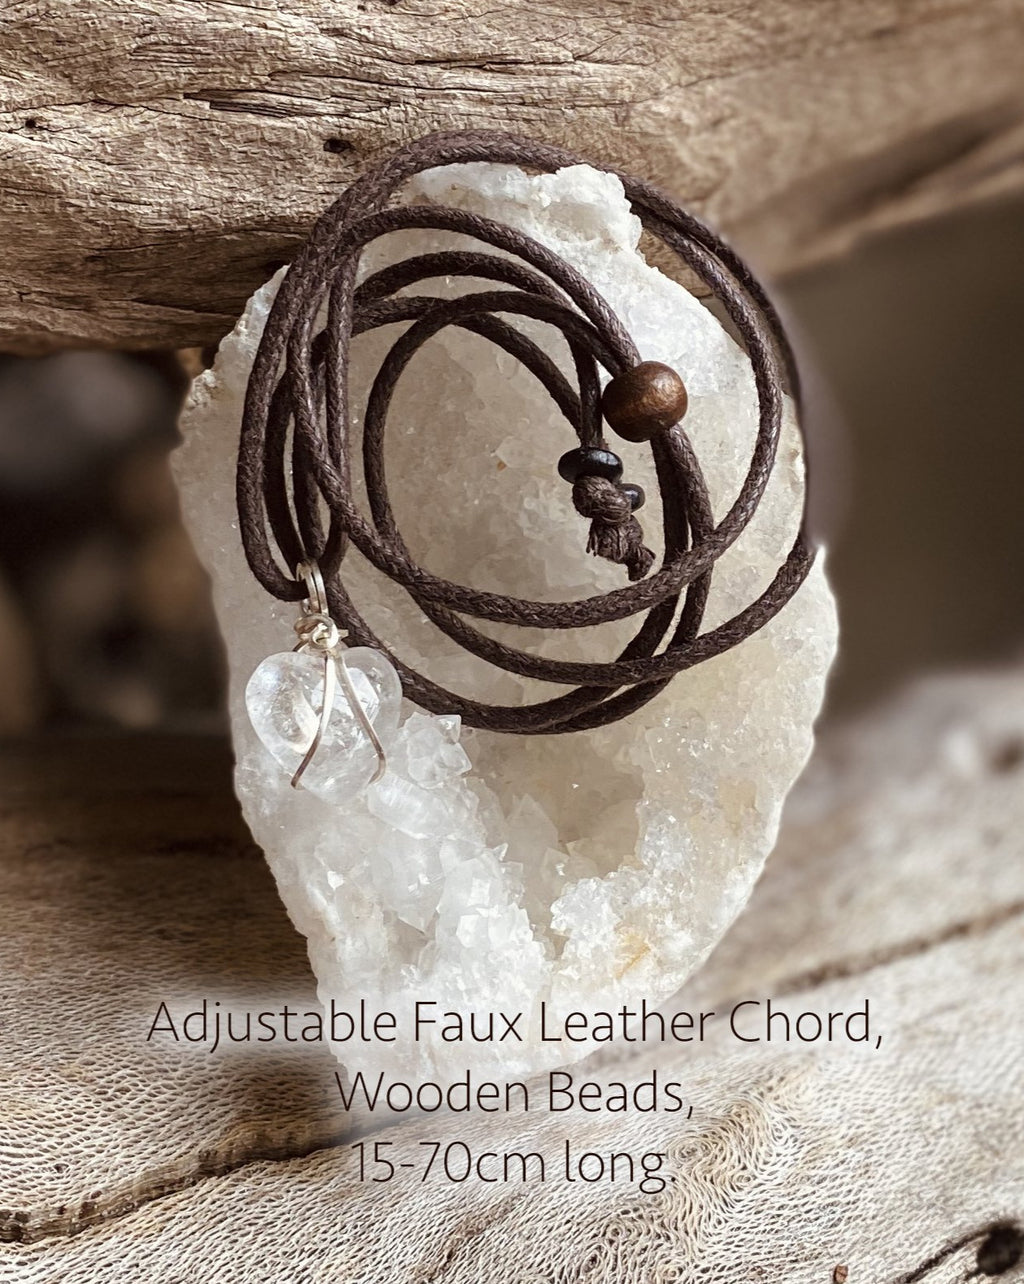 An adjustable length faux leather chord with wooden beads for wearing a crystal pendant. Brown in colour.